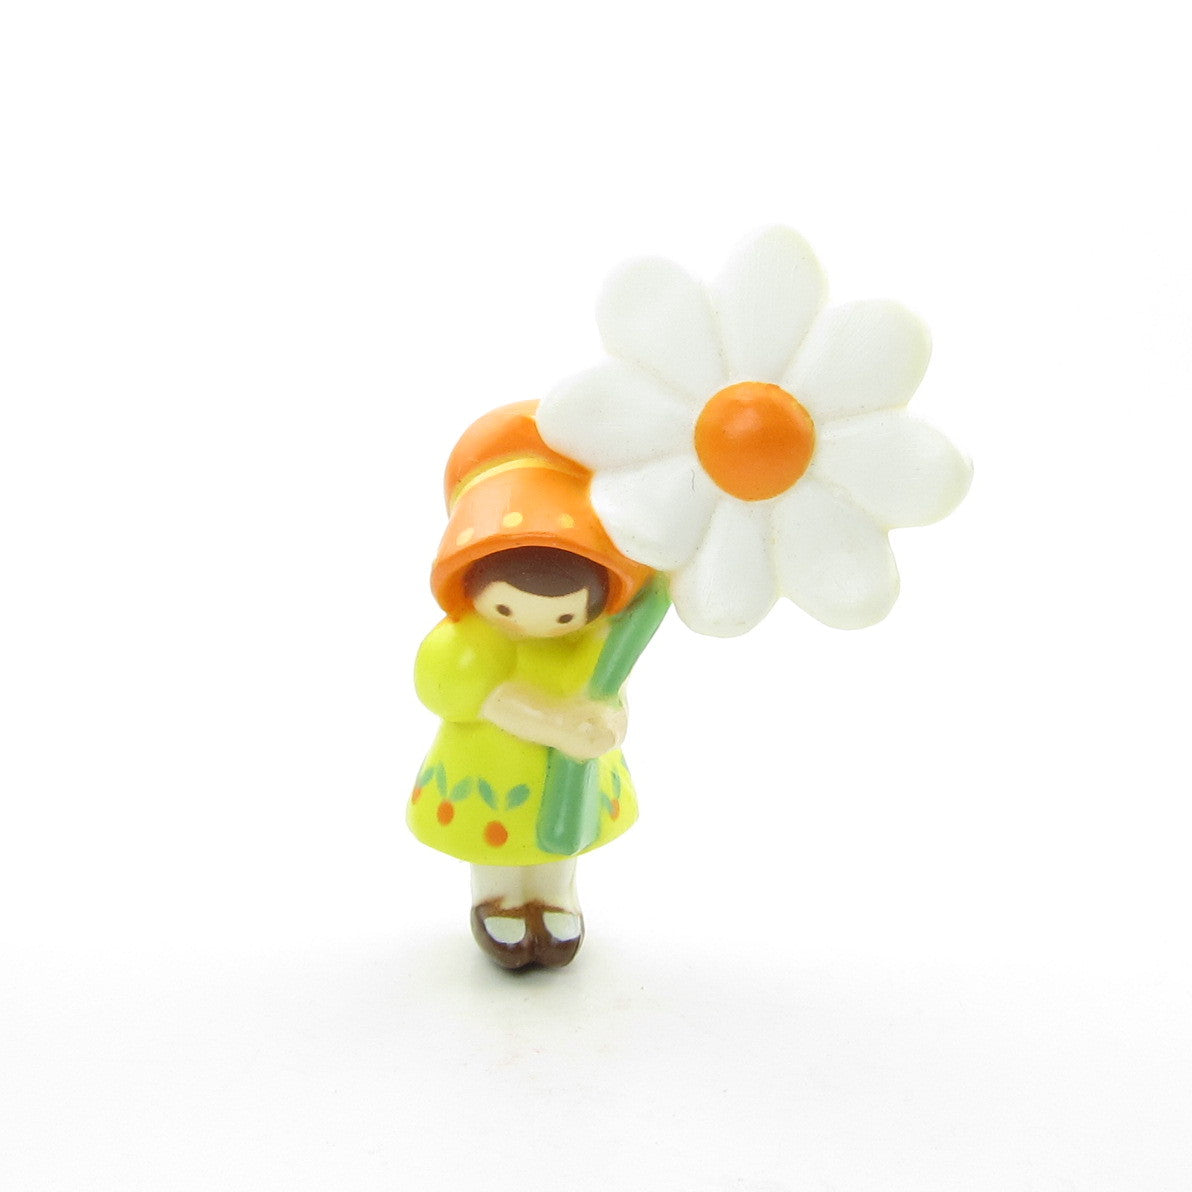 Hallmark pixie girl pin with yellow dress and orange bonnet